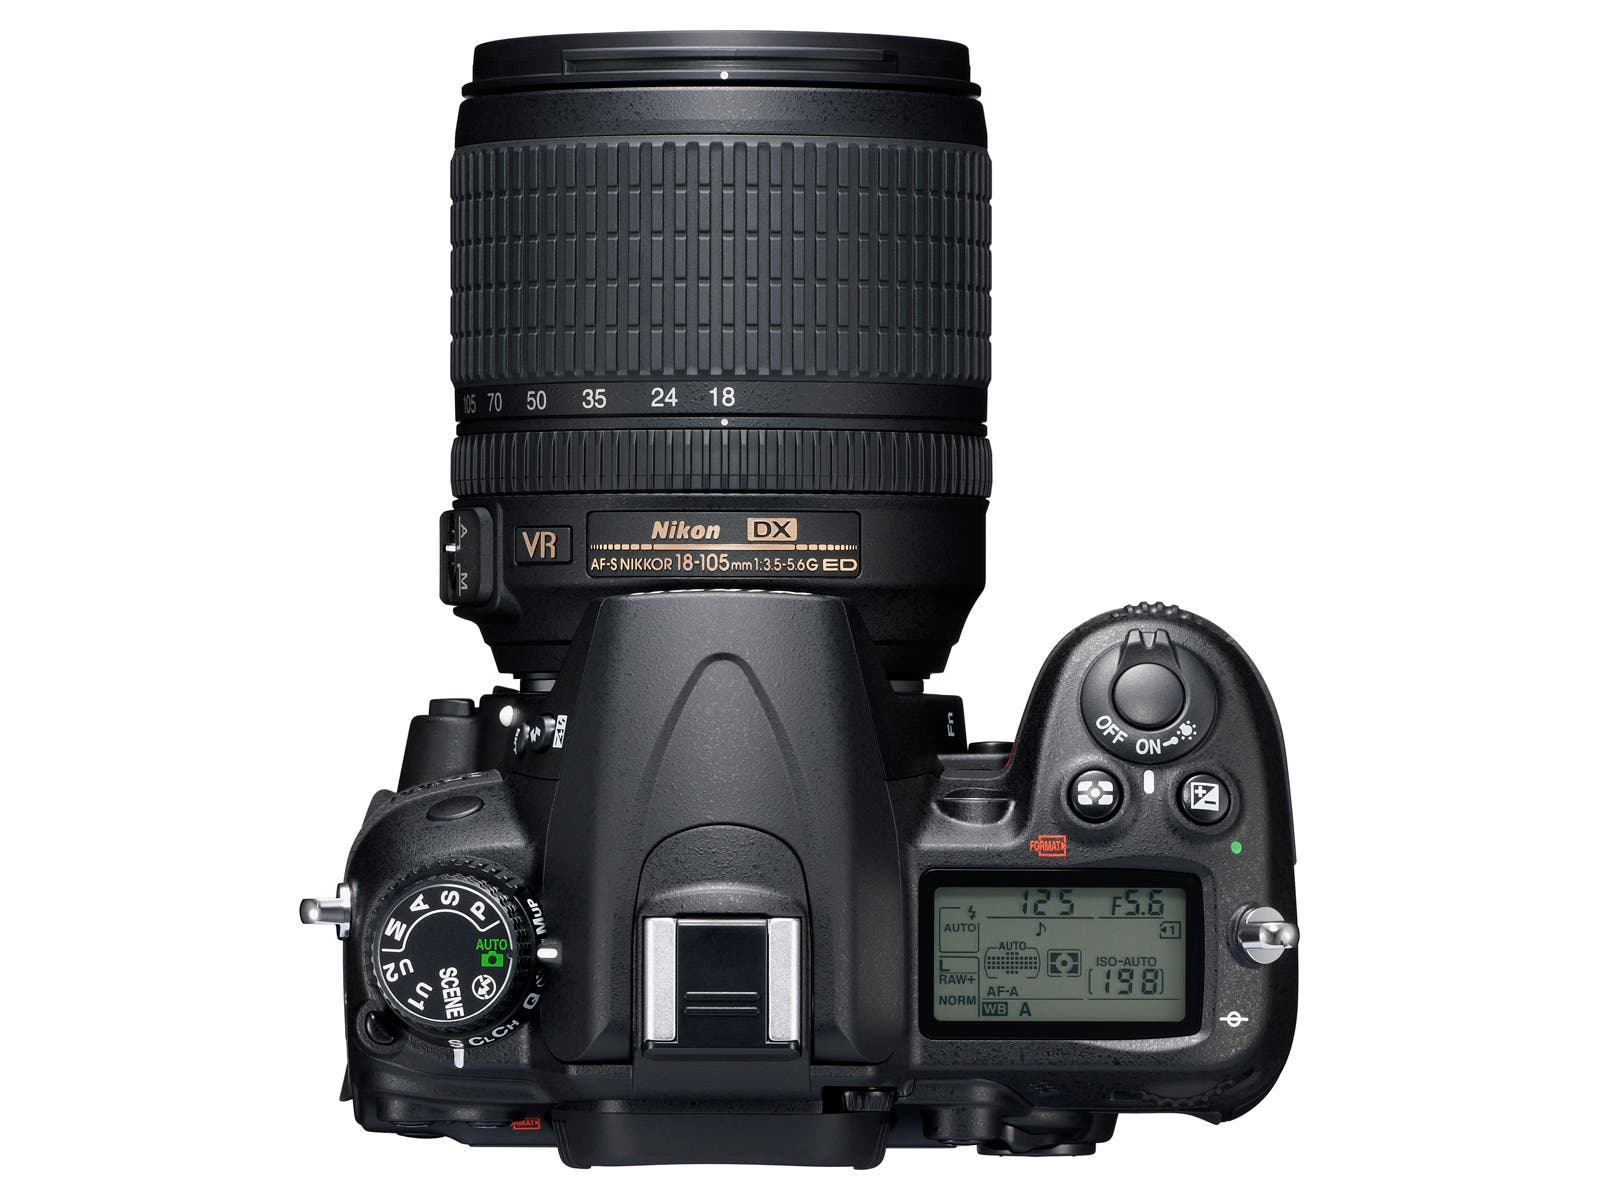 Nikon D7000 (Body Only) In-Stock at B&H